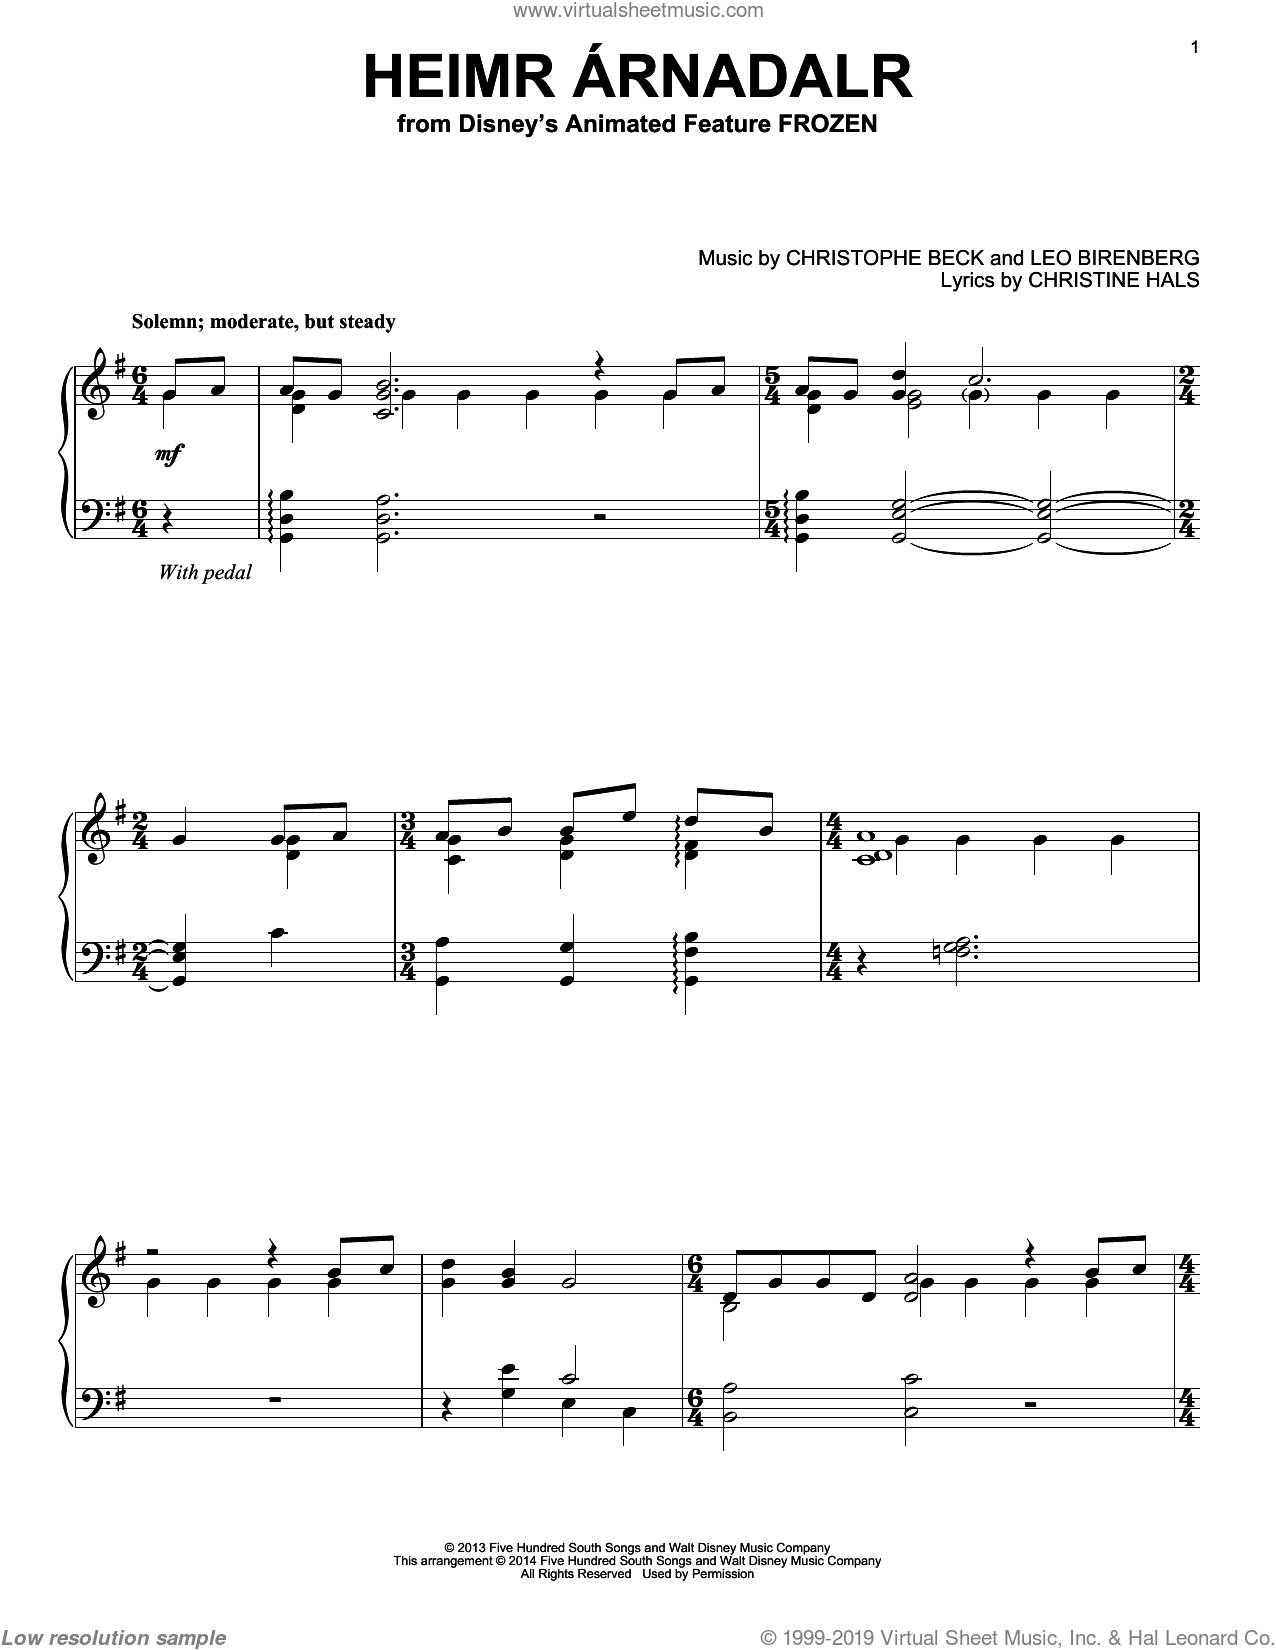 Heimr Arnadalr sheet music for piano solo by Robert Lopez, Kristen Anderson-Lopez, Christophe Beck, Christine Hals and Leo Birenberg, intermediate skill level